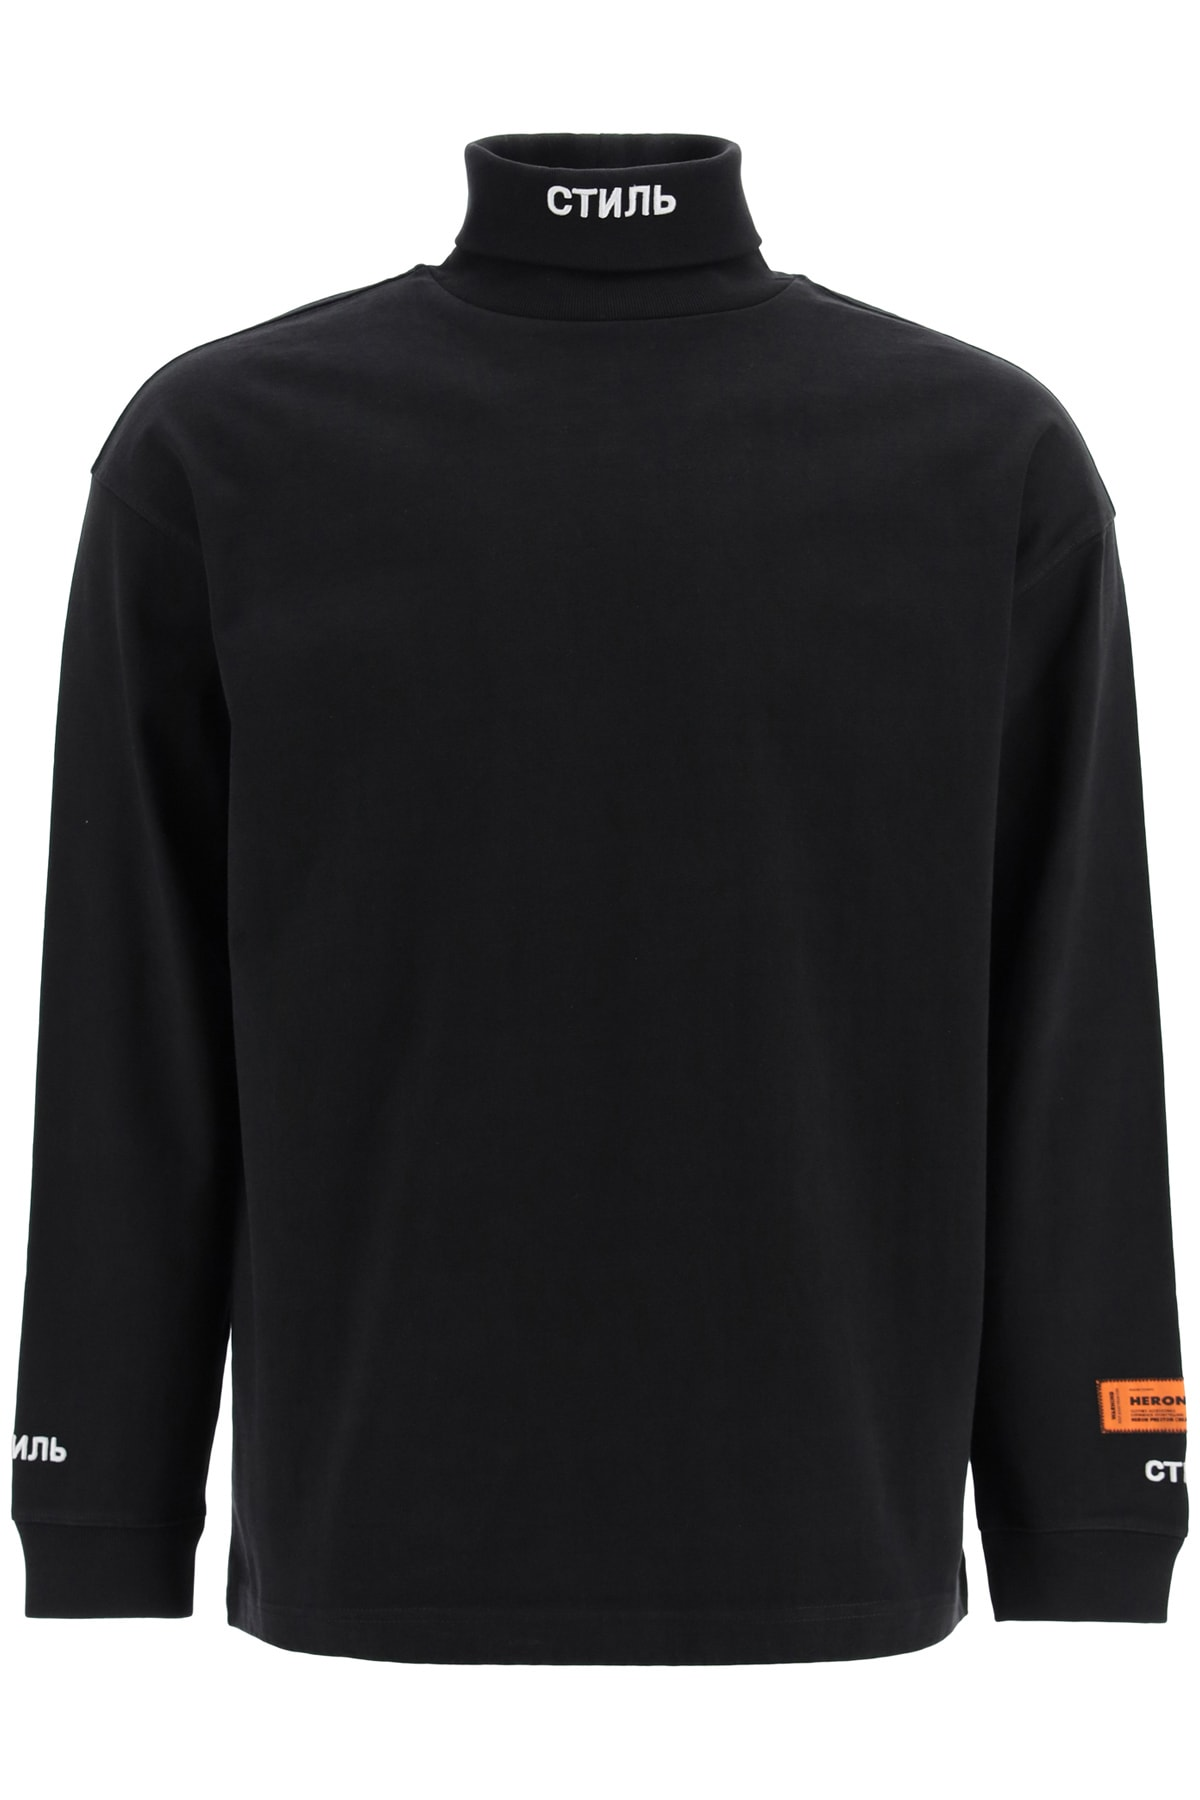 Heron Preston CNTMB COTTON T-SHIRT